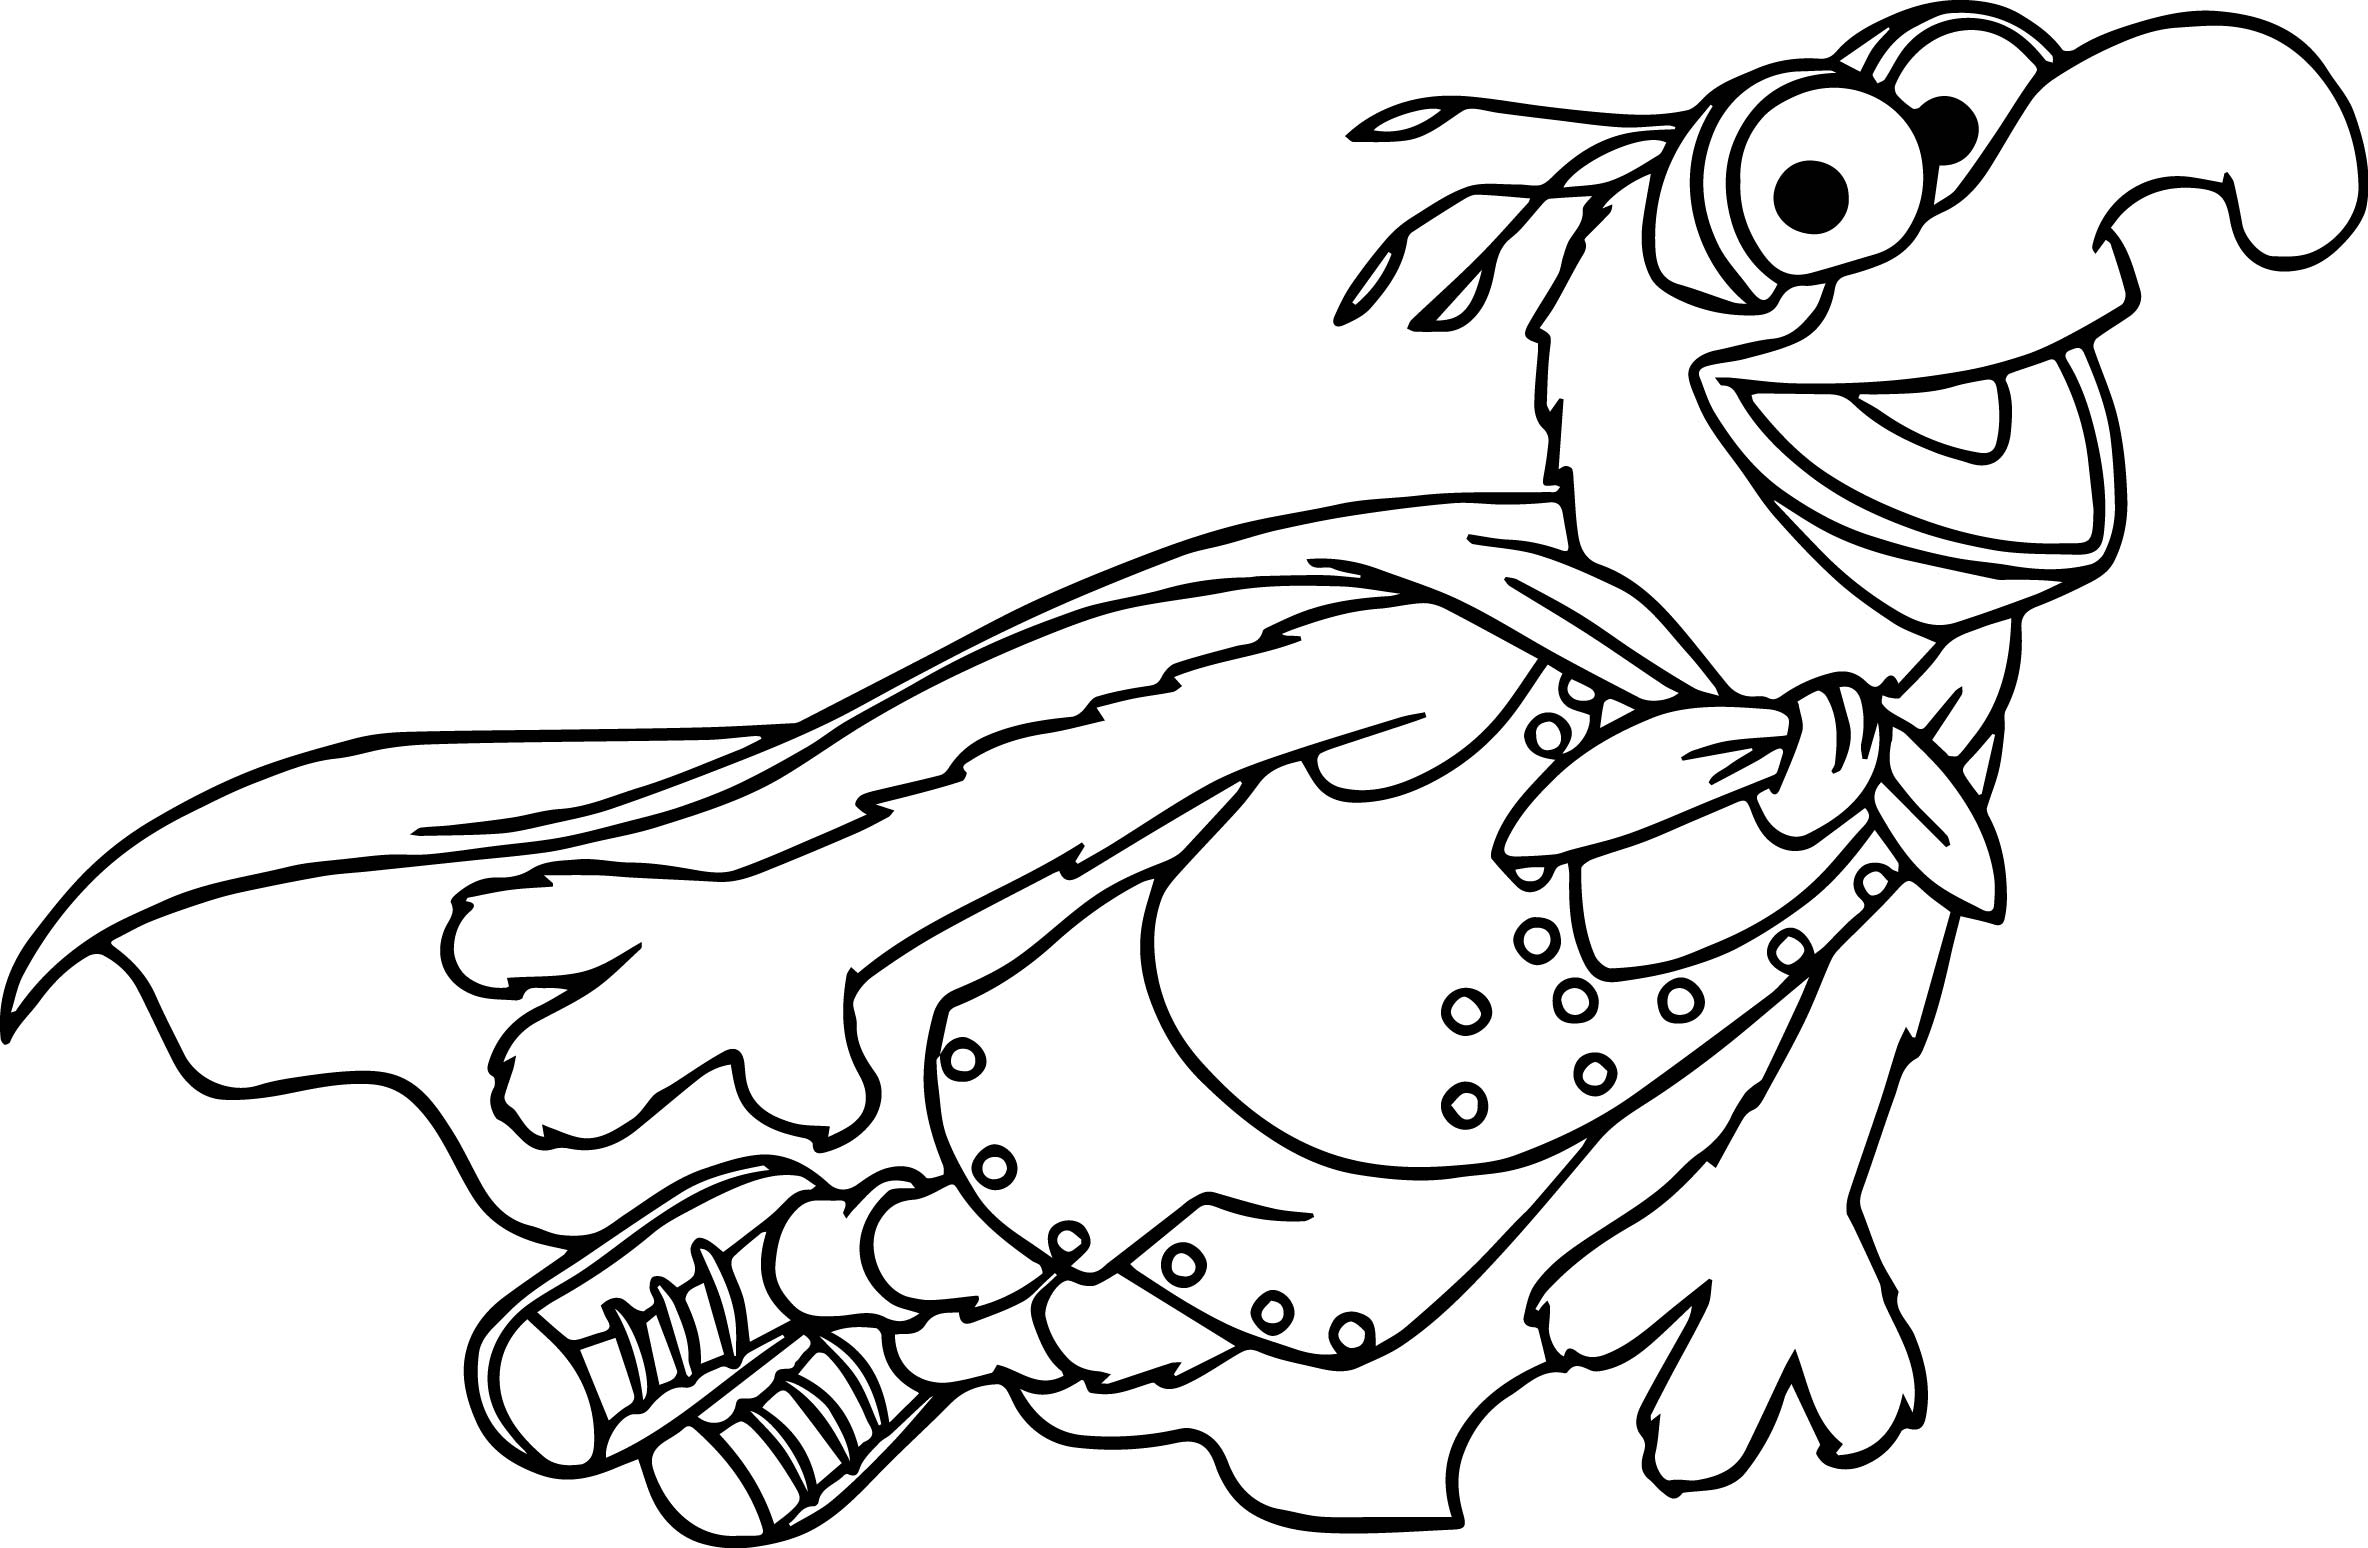 The Muppets Muppets Gonzo Fly Coloring Pages Wecoloringpage Com